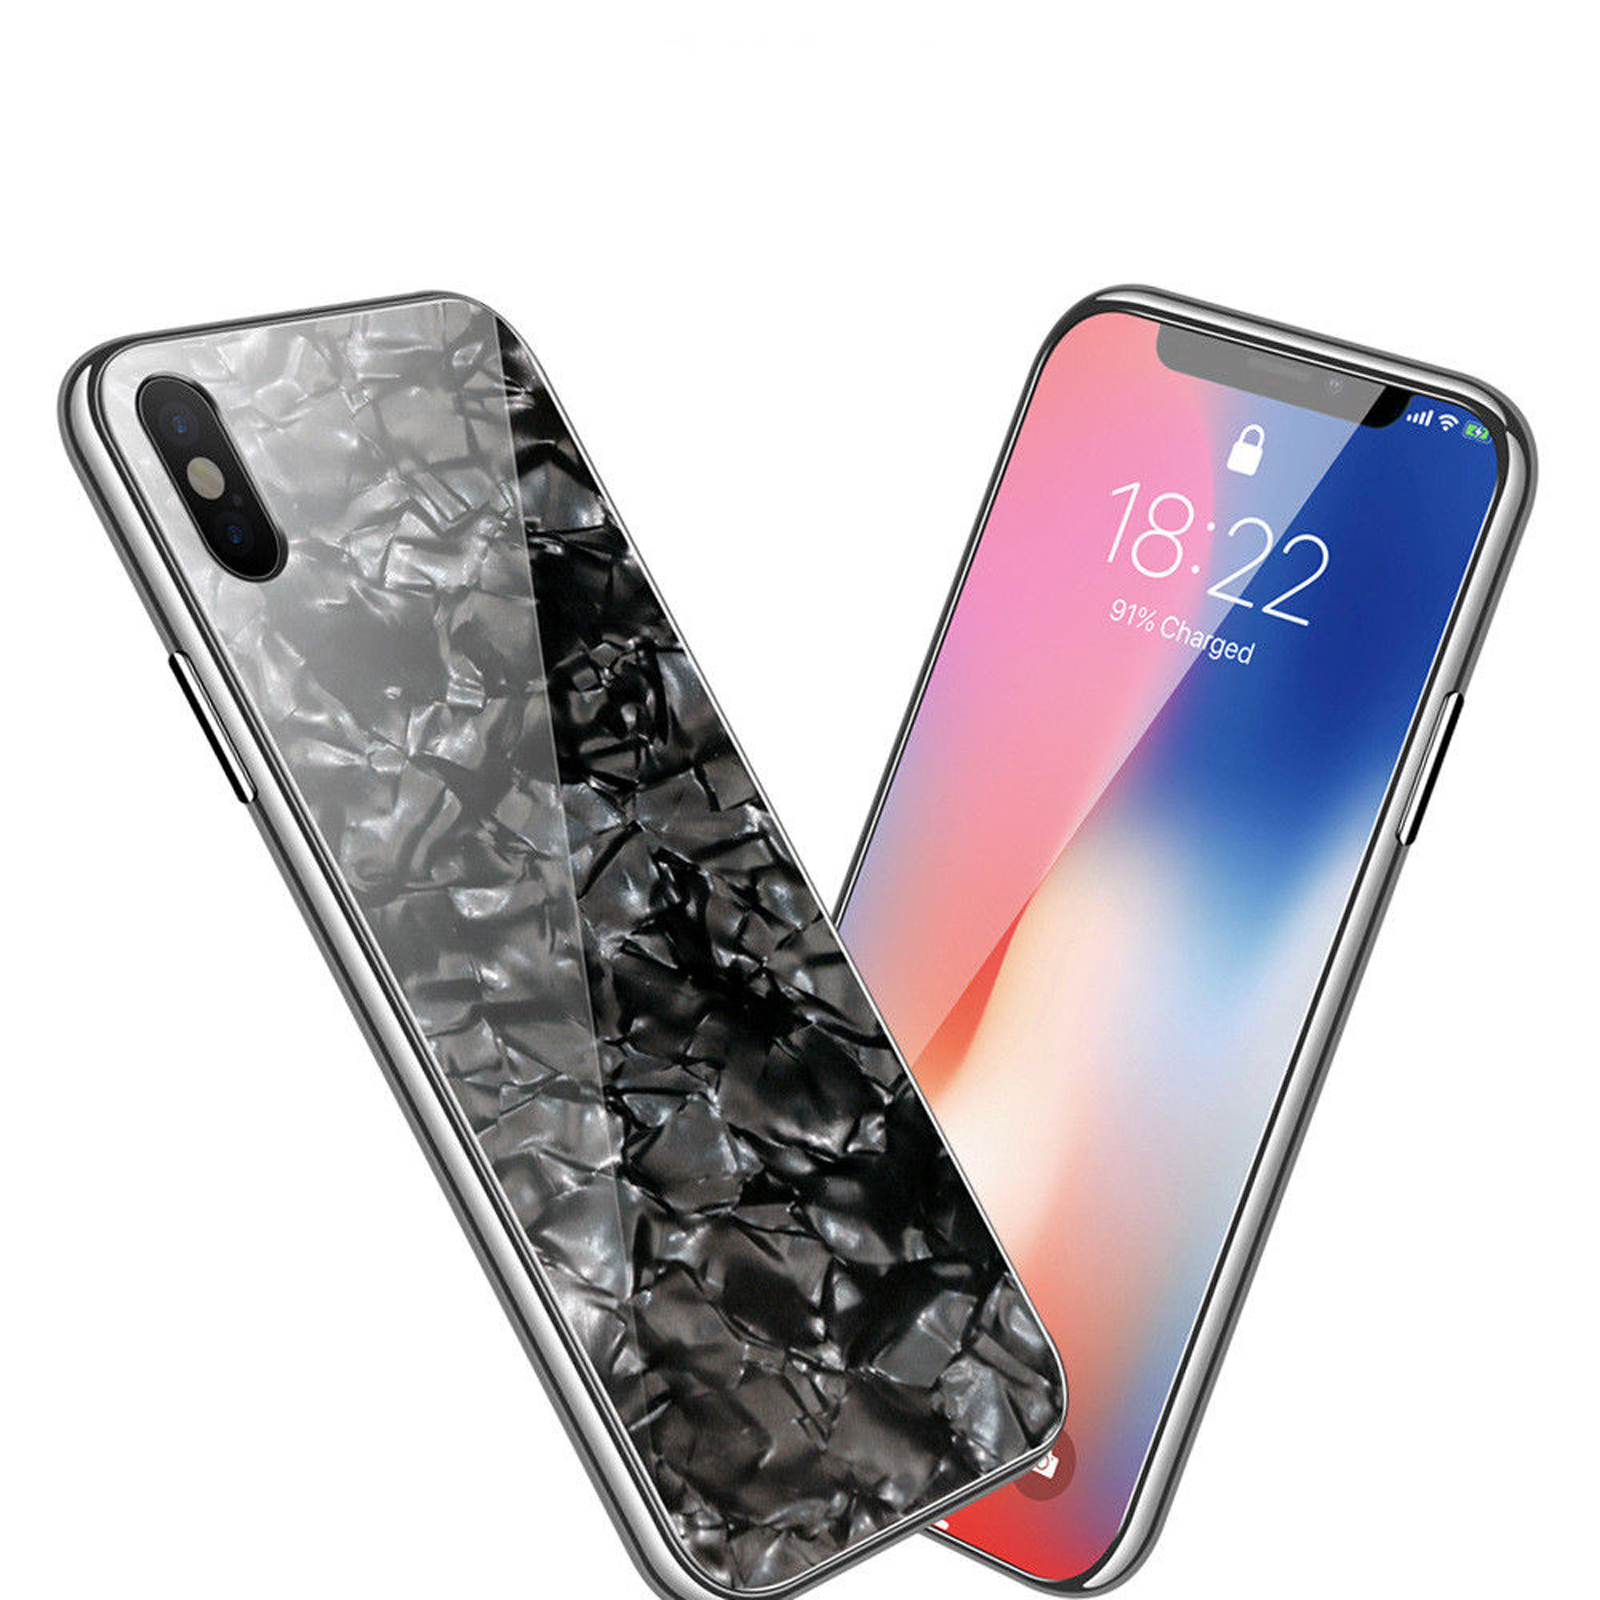 Luxury-Marble-Tempered-Glass-Case-Cover-For-Apple-iPhone-X-XS-XR-Max-10-8-7-6s-6 miniature 24